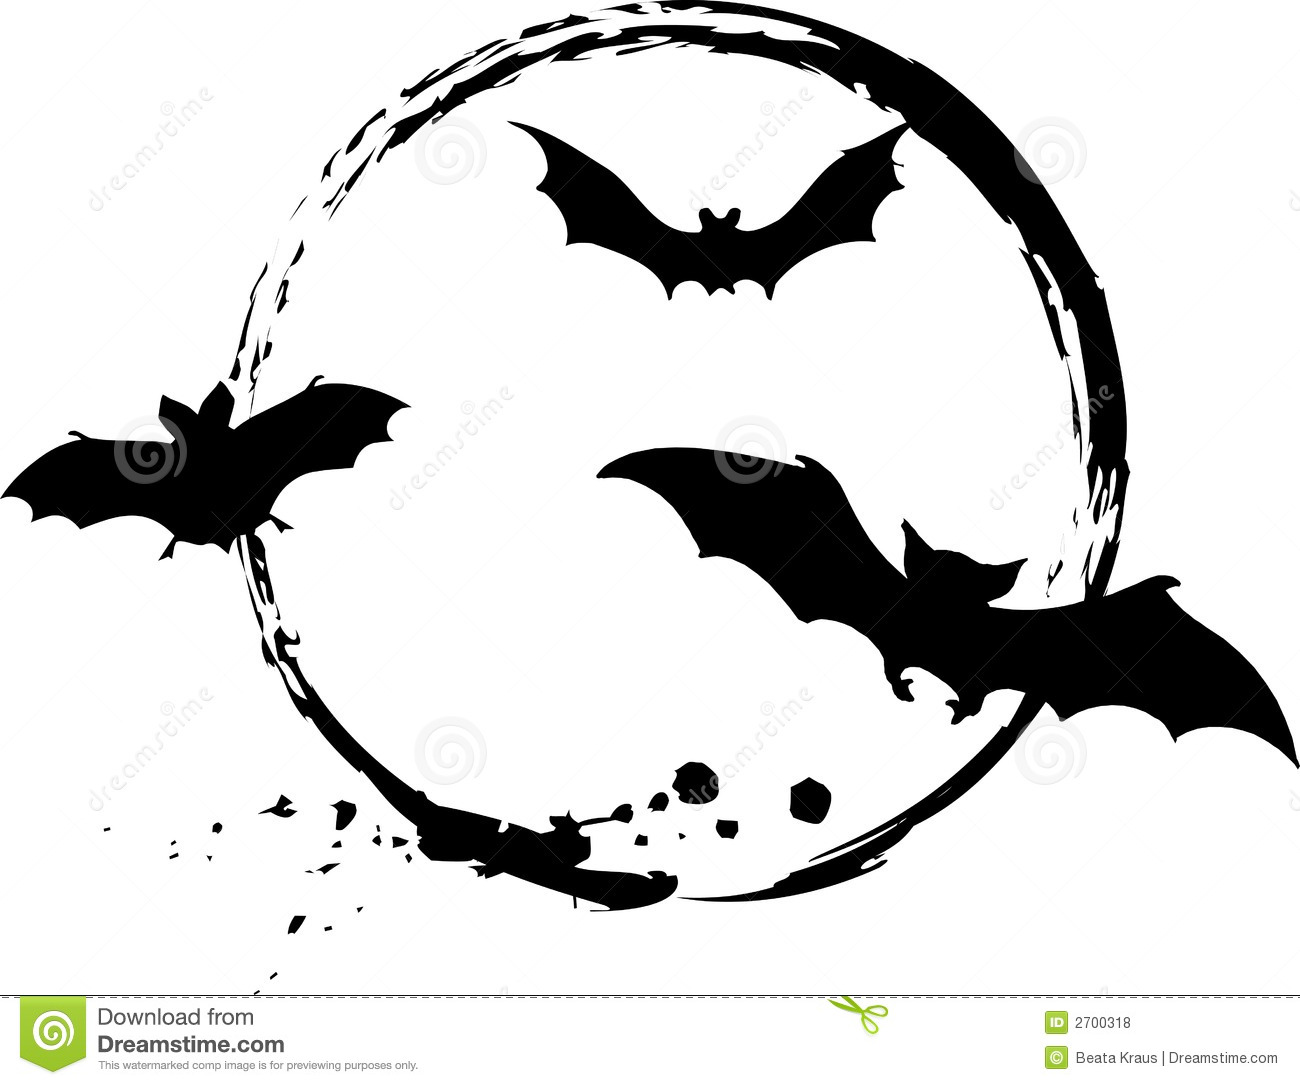 Royalty Free Stock Photos Halloween Bats Image2700318 likewise Murcielagos Para Dibujar Cpearj5BR in addition Clipart 4i9qrG6iE besides Spiderman 4 Symbol also Halloween Spider Wall Decal. on scary halloween decorations cartoon